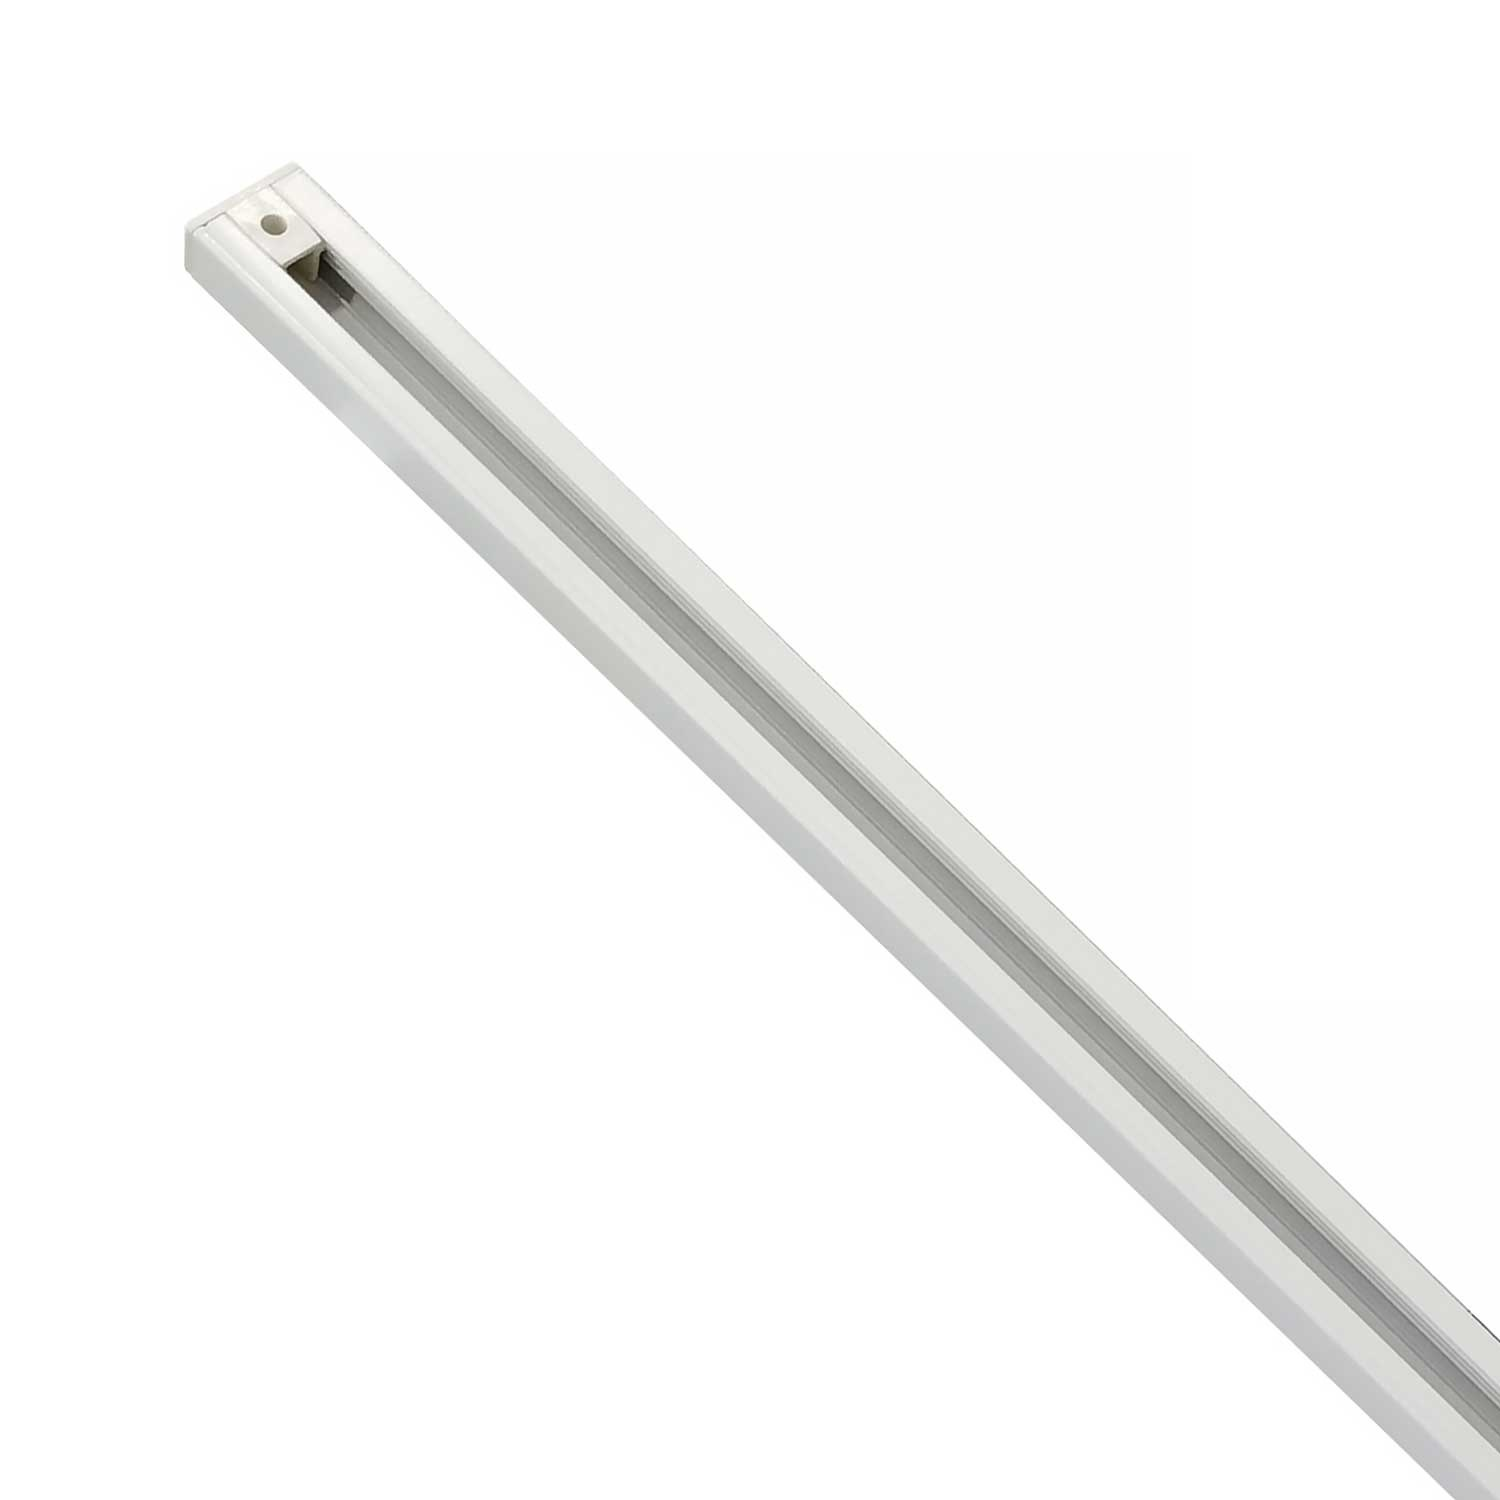 Highlight Rail 150 cm Trackline wit